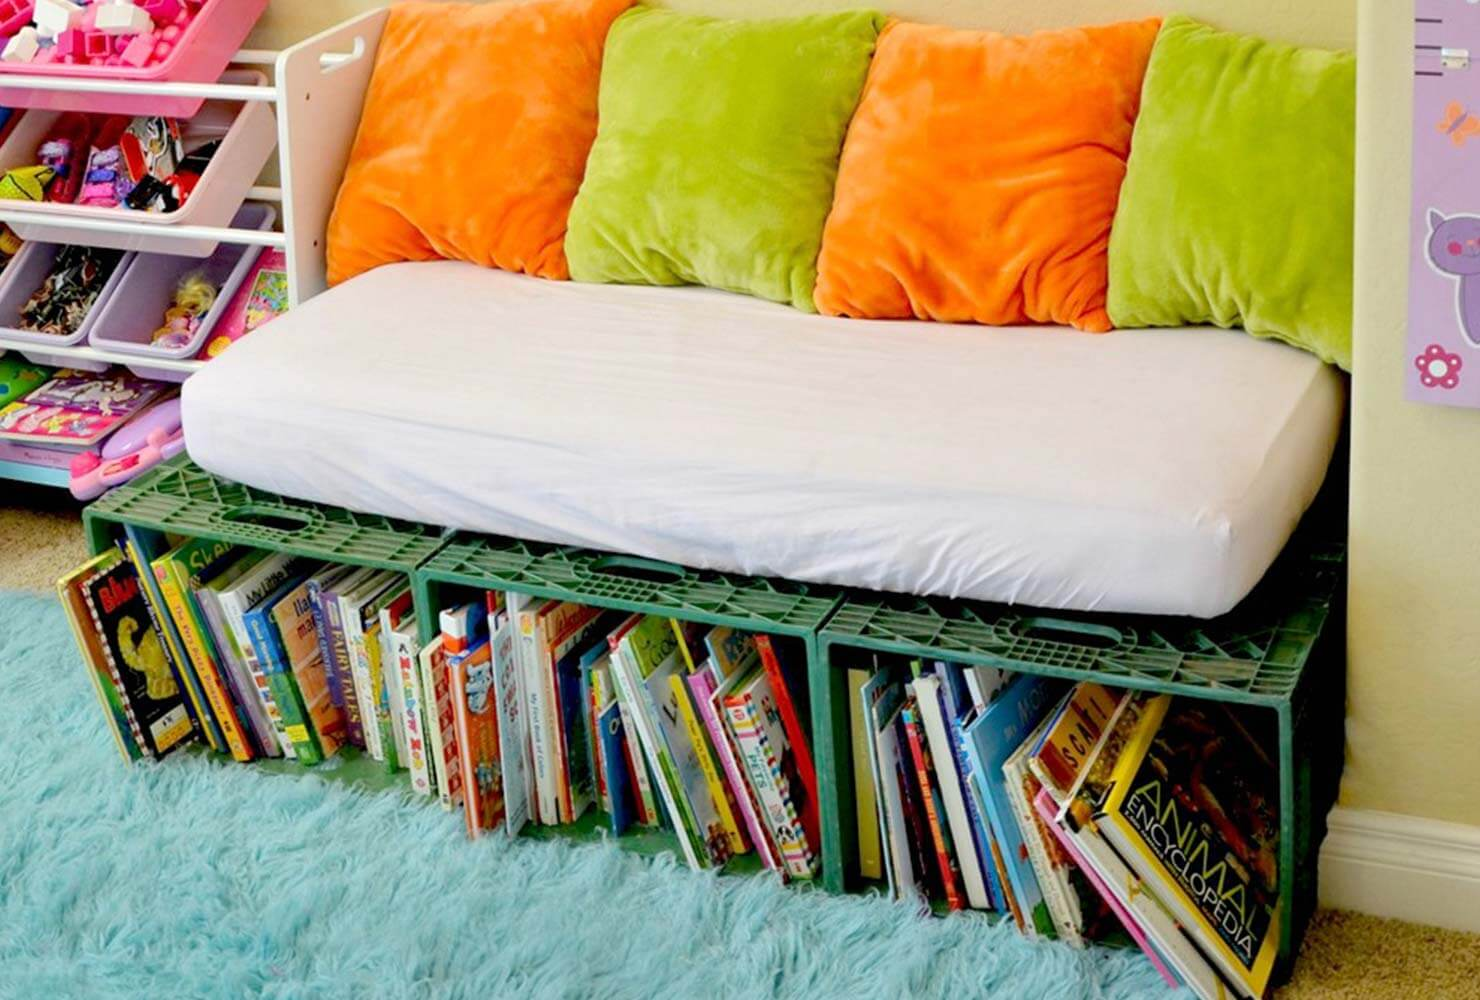 couch book shelves